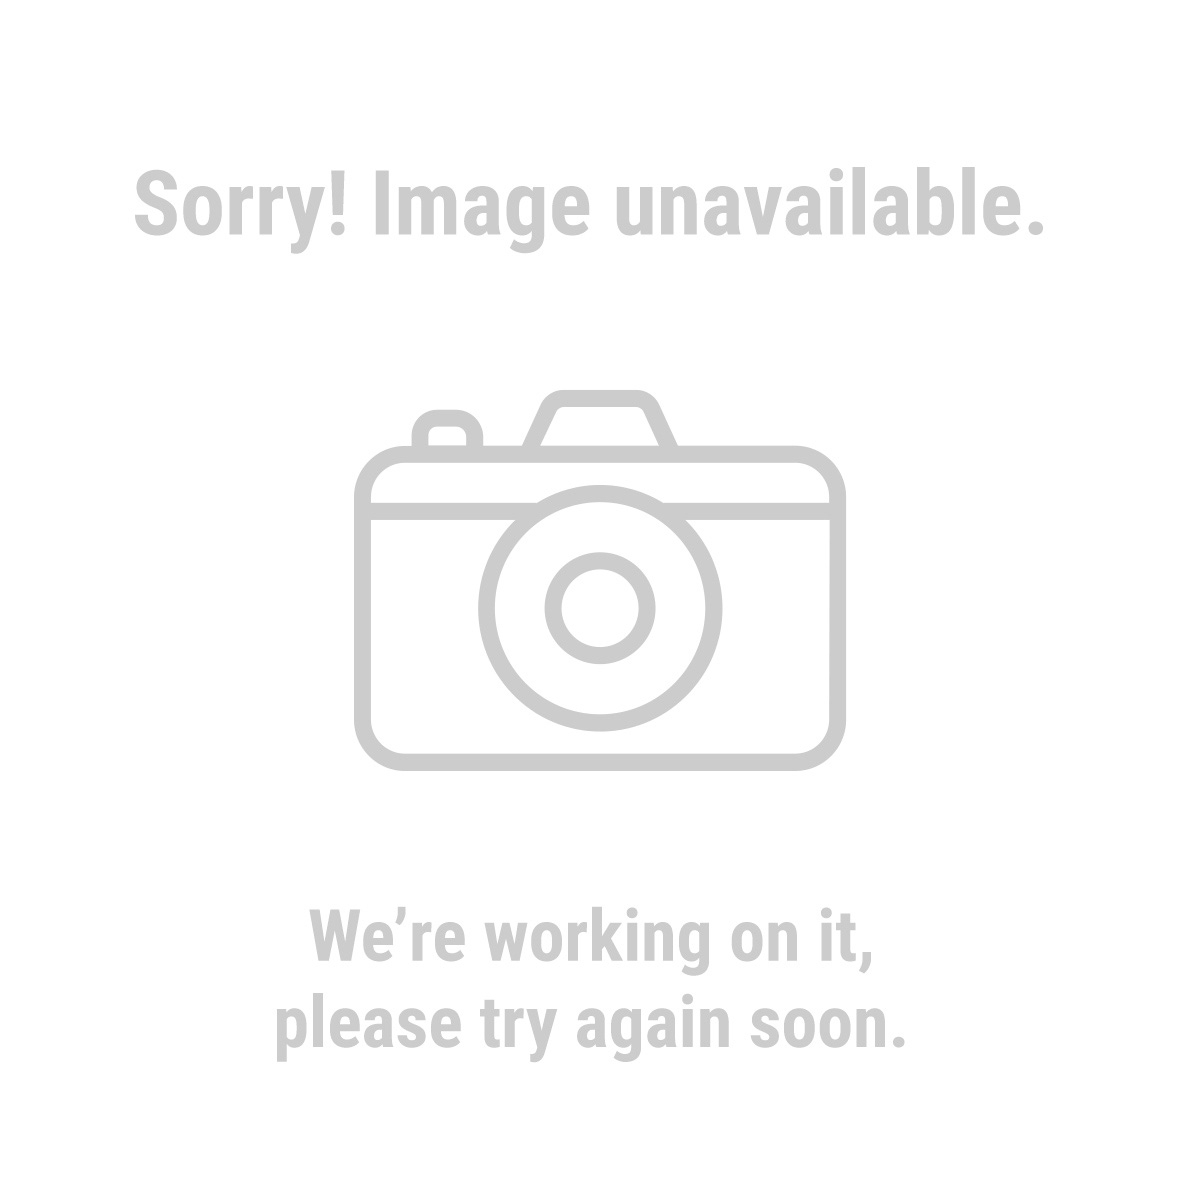 Pittsburgh 47067 11 Piece Metric Highly Polished Long Handle Combination Wrench Set